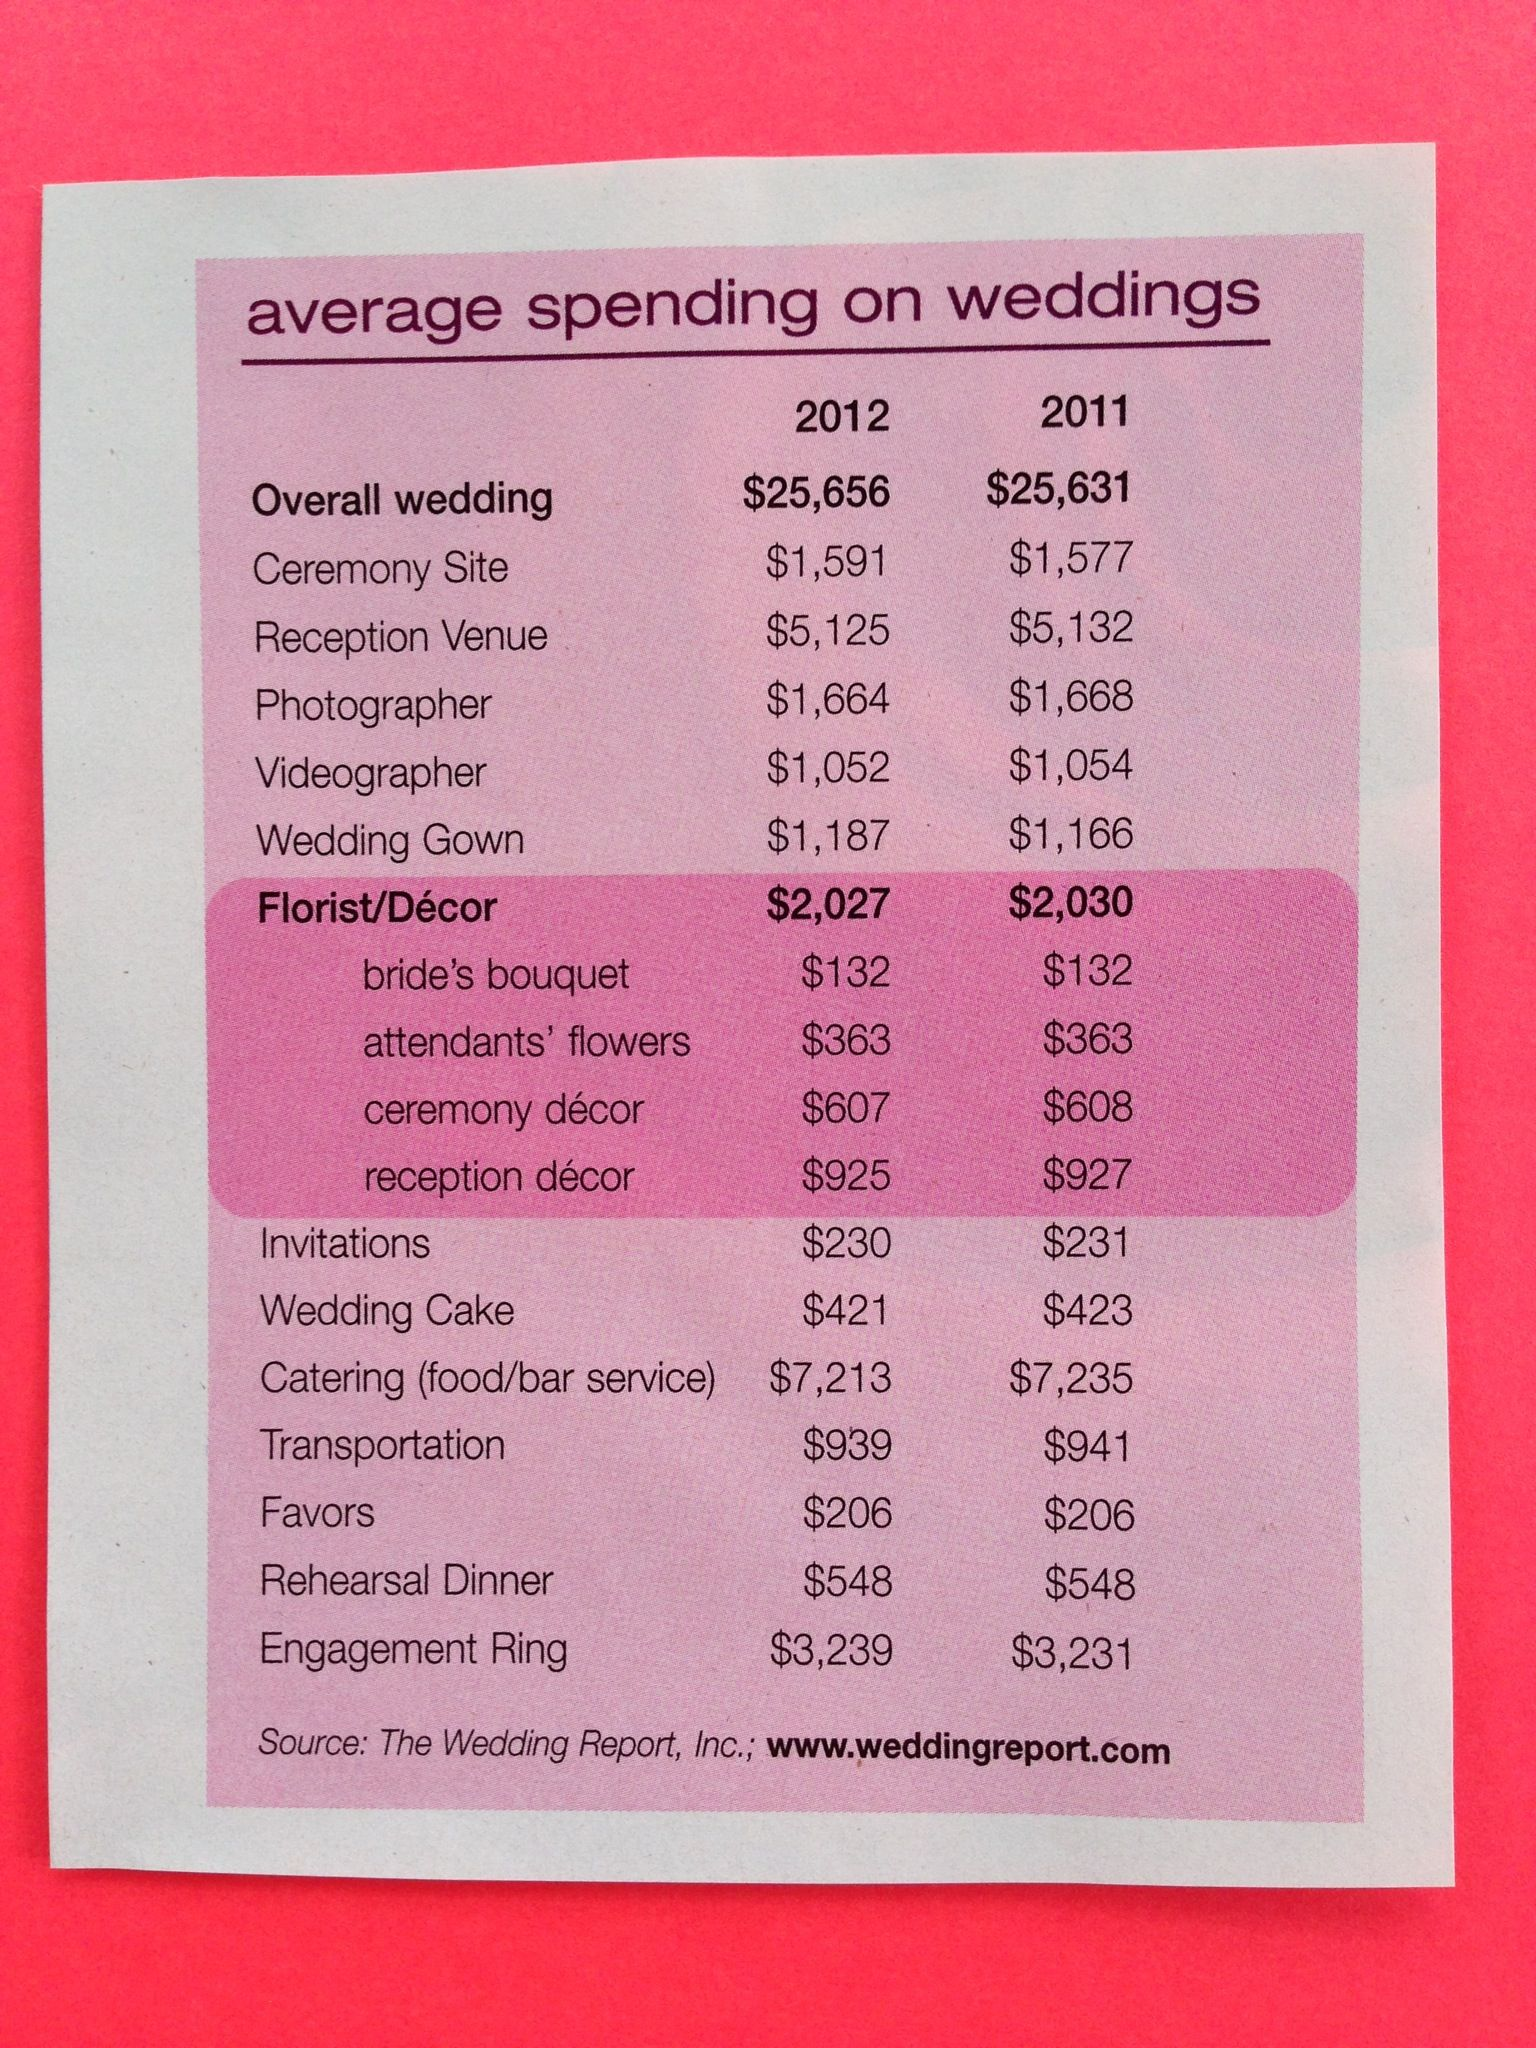 Wedding Costs | Wedding Inspirations | Pinterest | Wedding costs ...